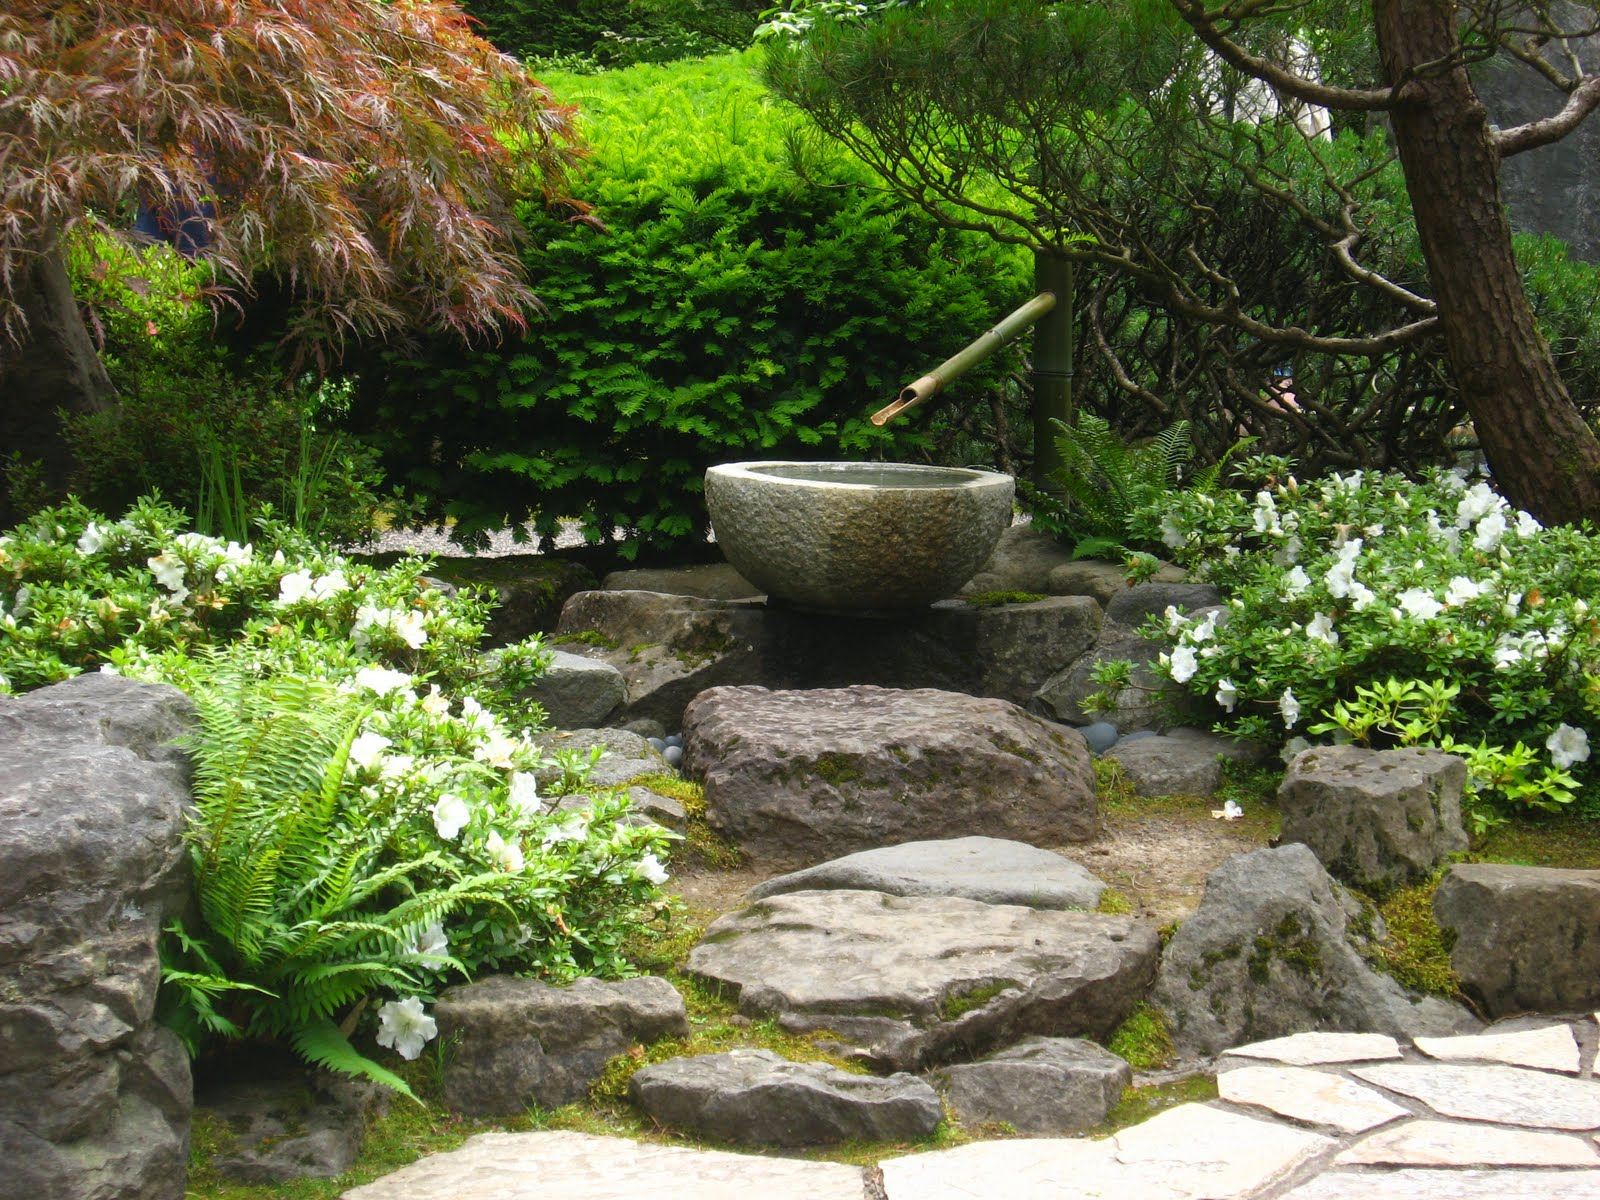 Running with rocket japanese garden inspiration for Garden design features